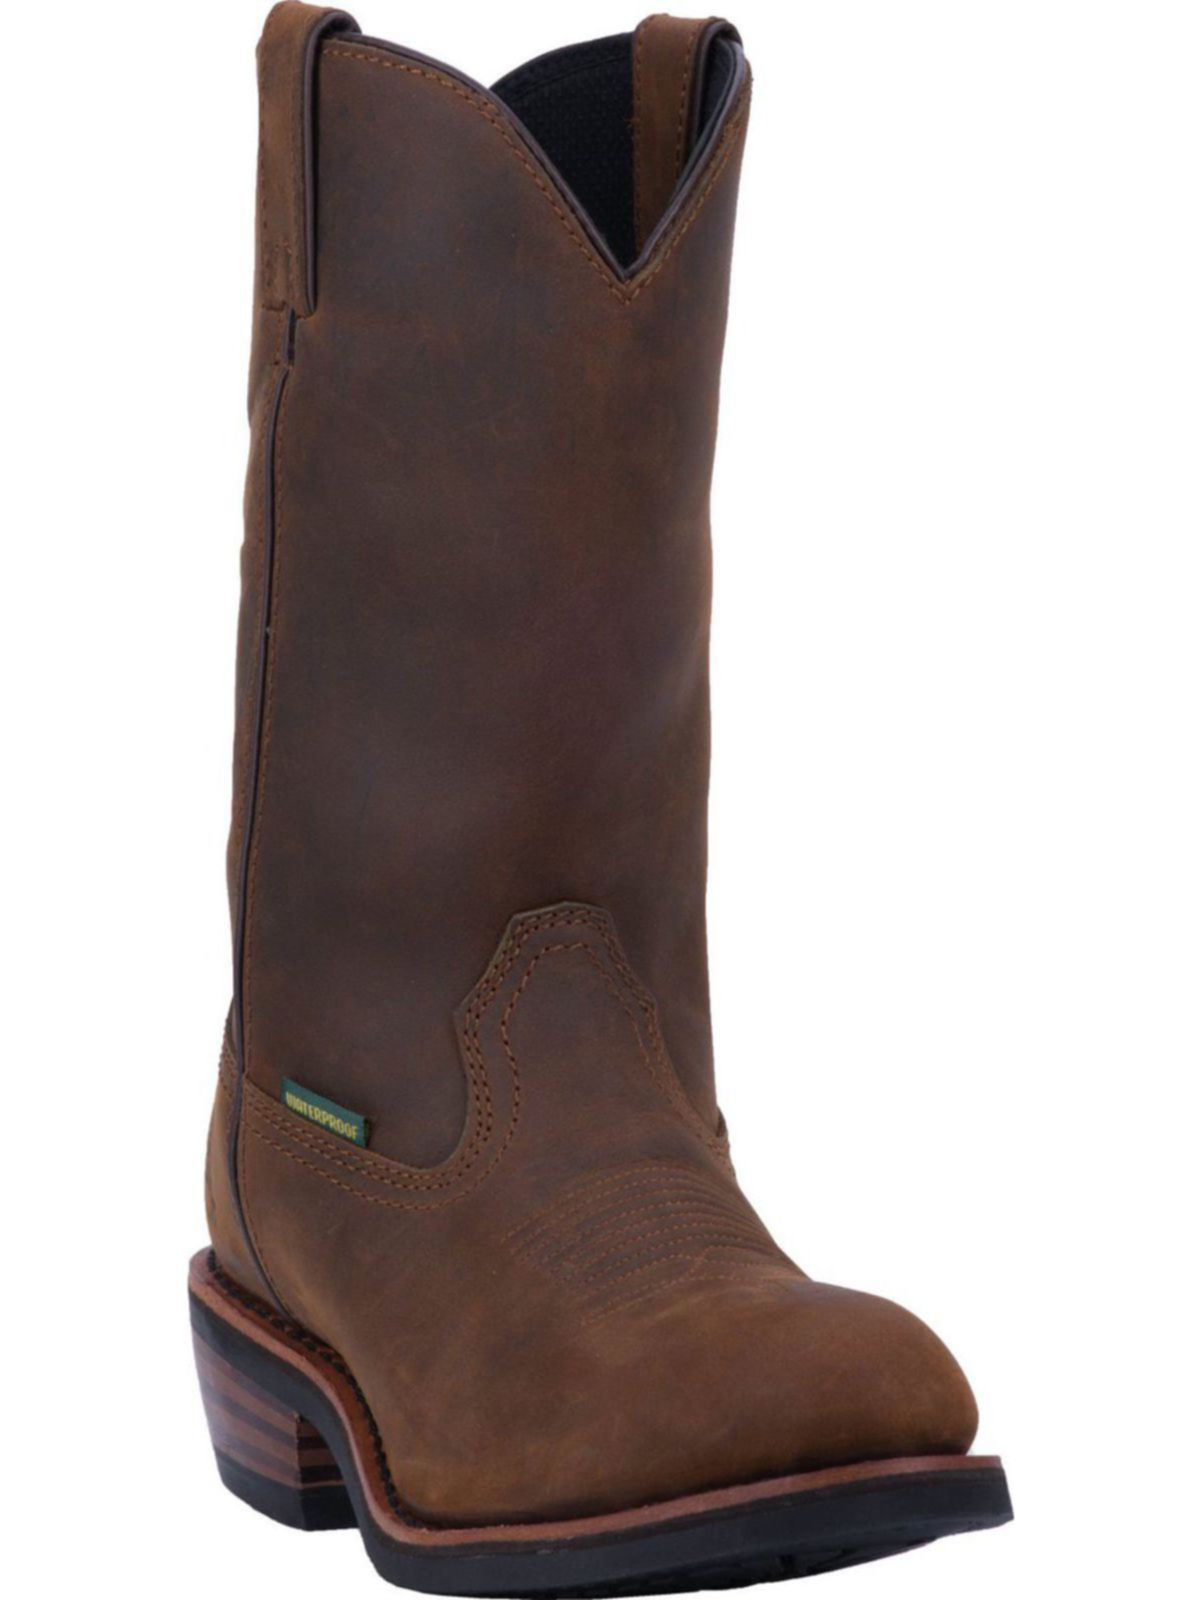 Bootamerica Dan Post Mens Albuquerque Waterproof Tan